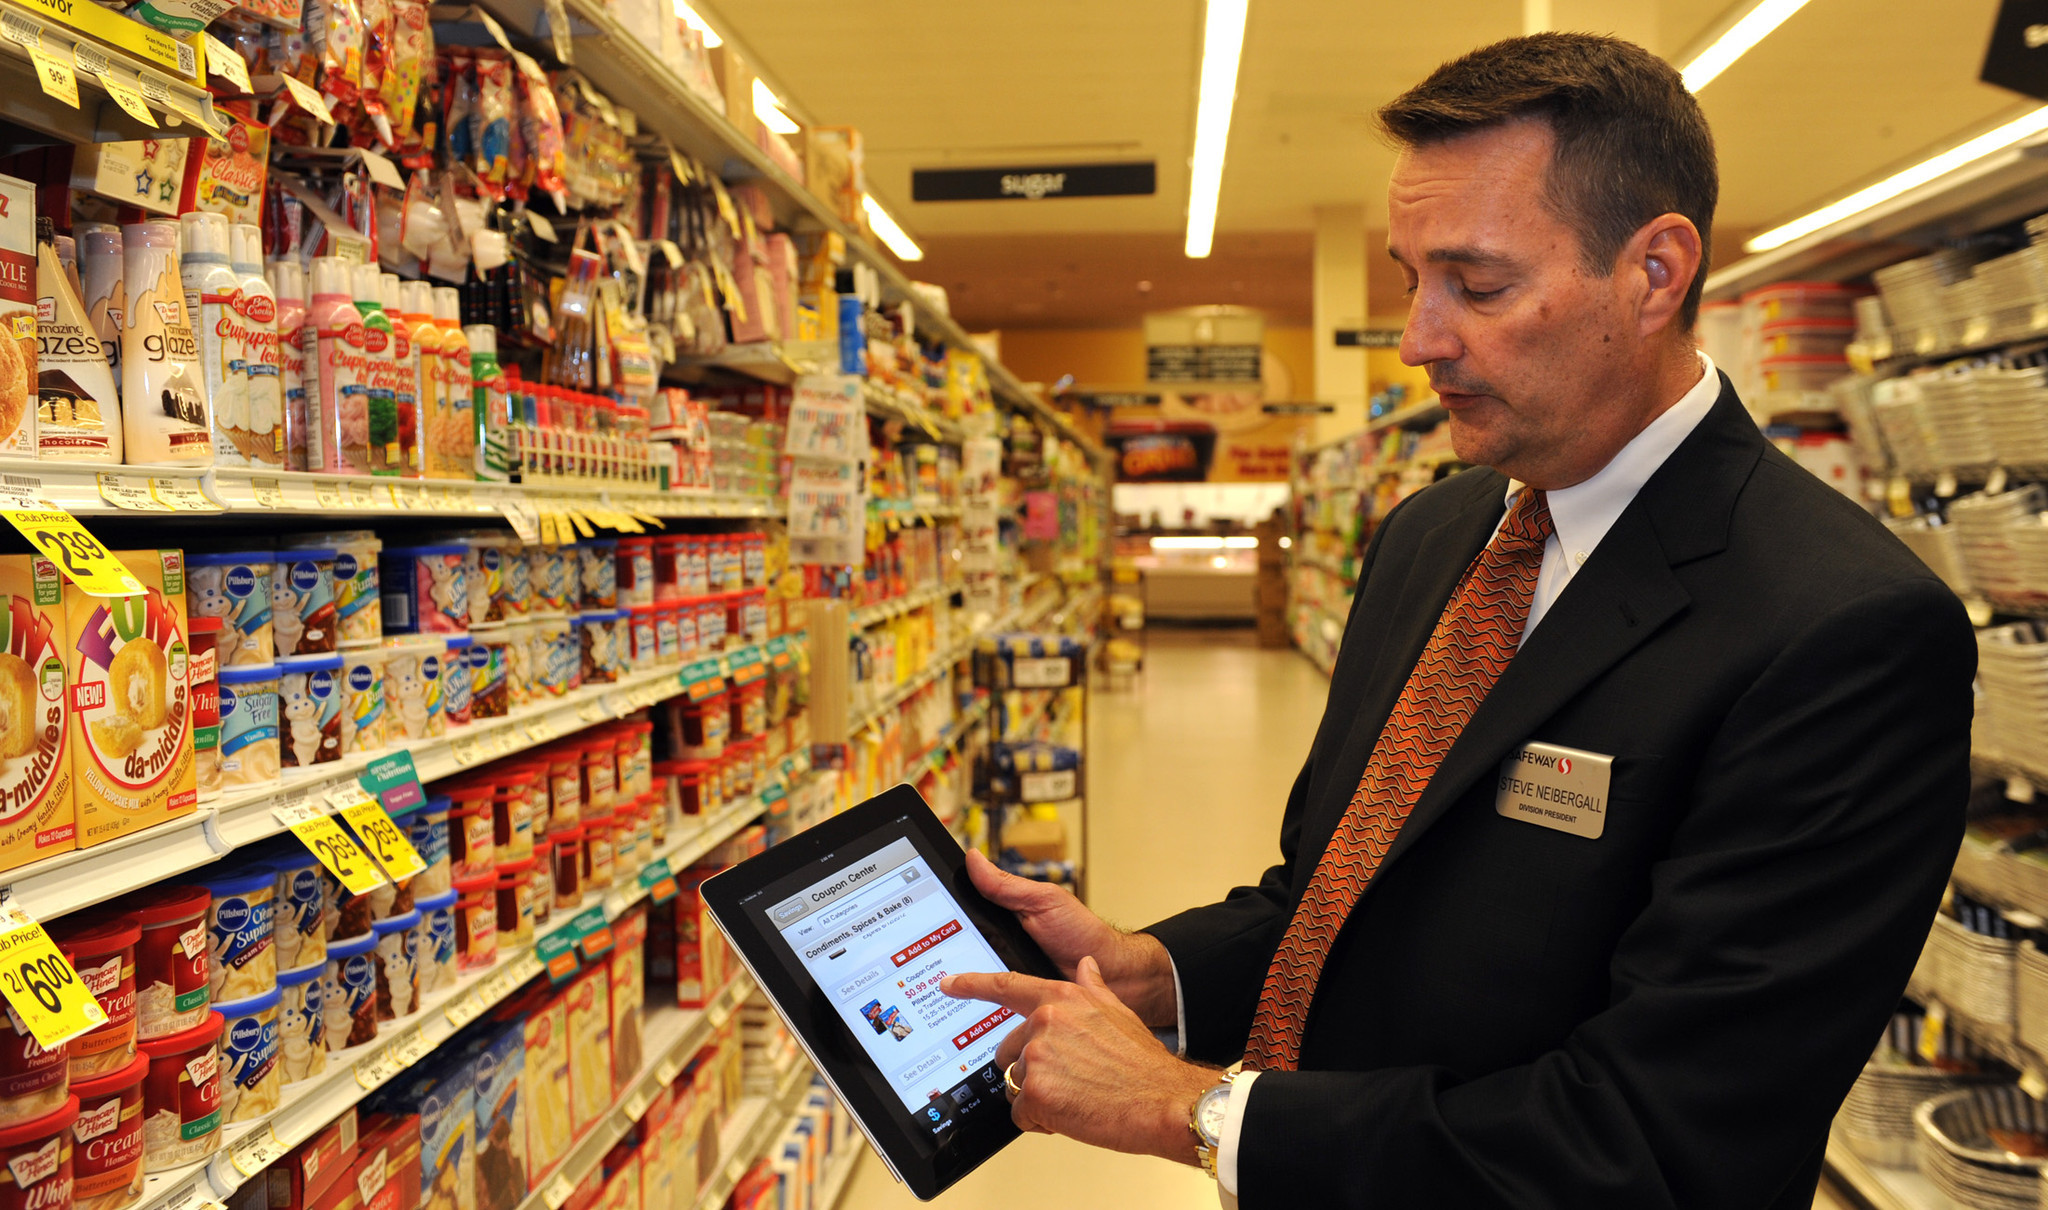 Steve Neibergall, president of Safeway's eastern division, demonstrates the company's new mobile app in the Canton store.